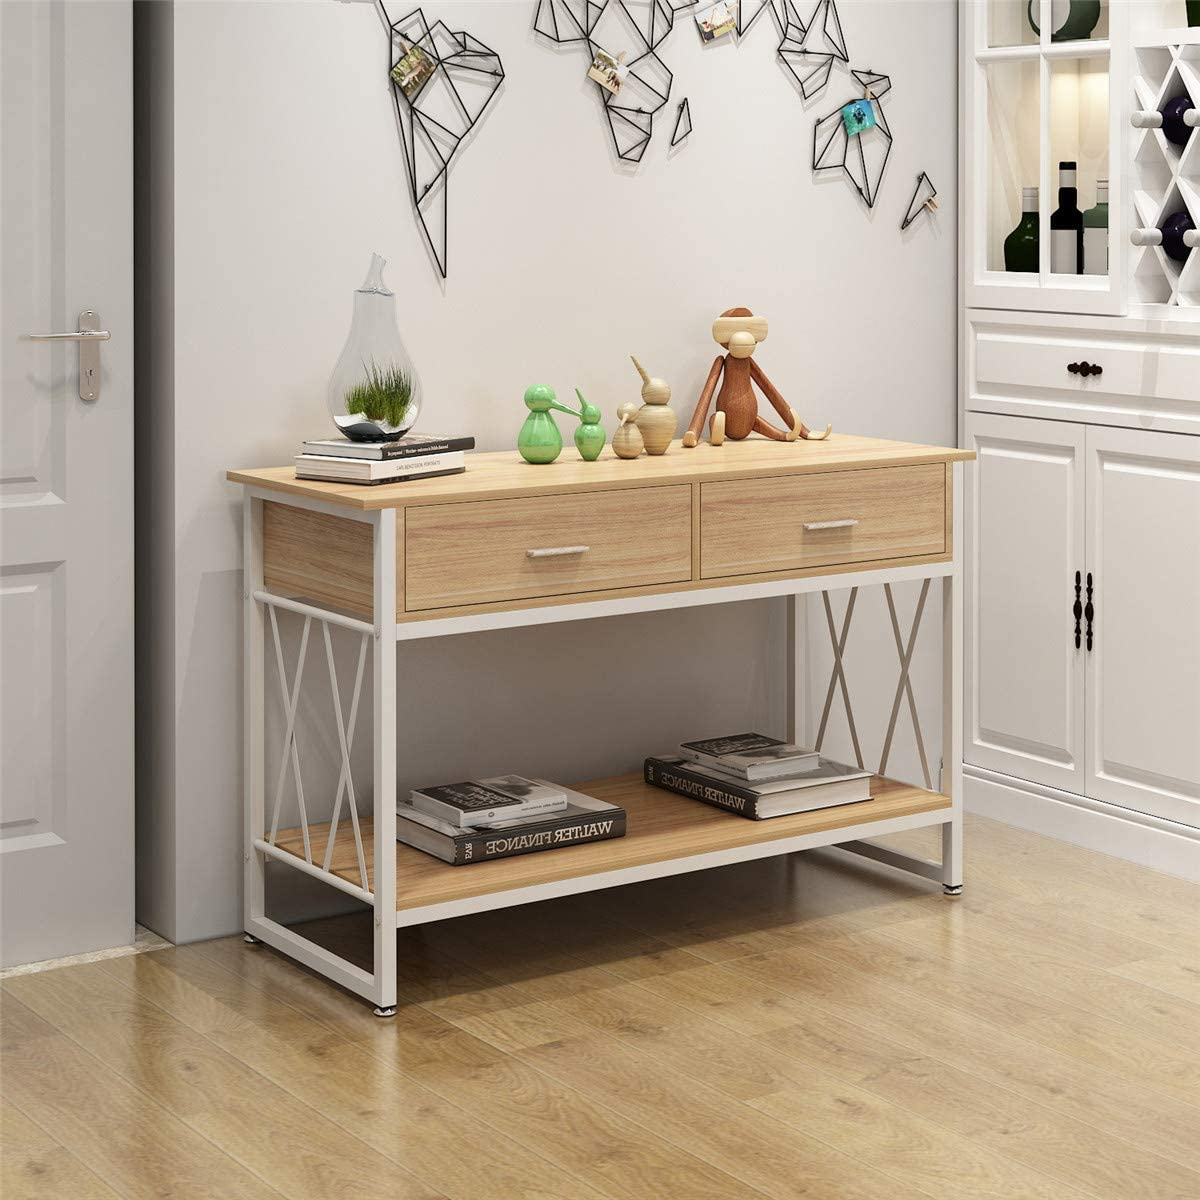 Console Table,47 Industrial Entryway Table,Sofa Table with Drawers,2-Tier Hallway Table for Entryway,Entertainment Center Media Stand with Storage Shelf for Living Room, Corridor